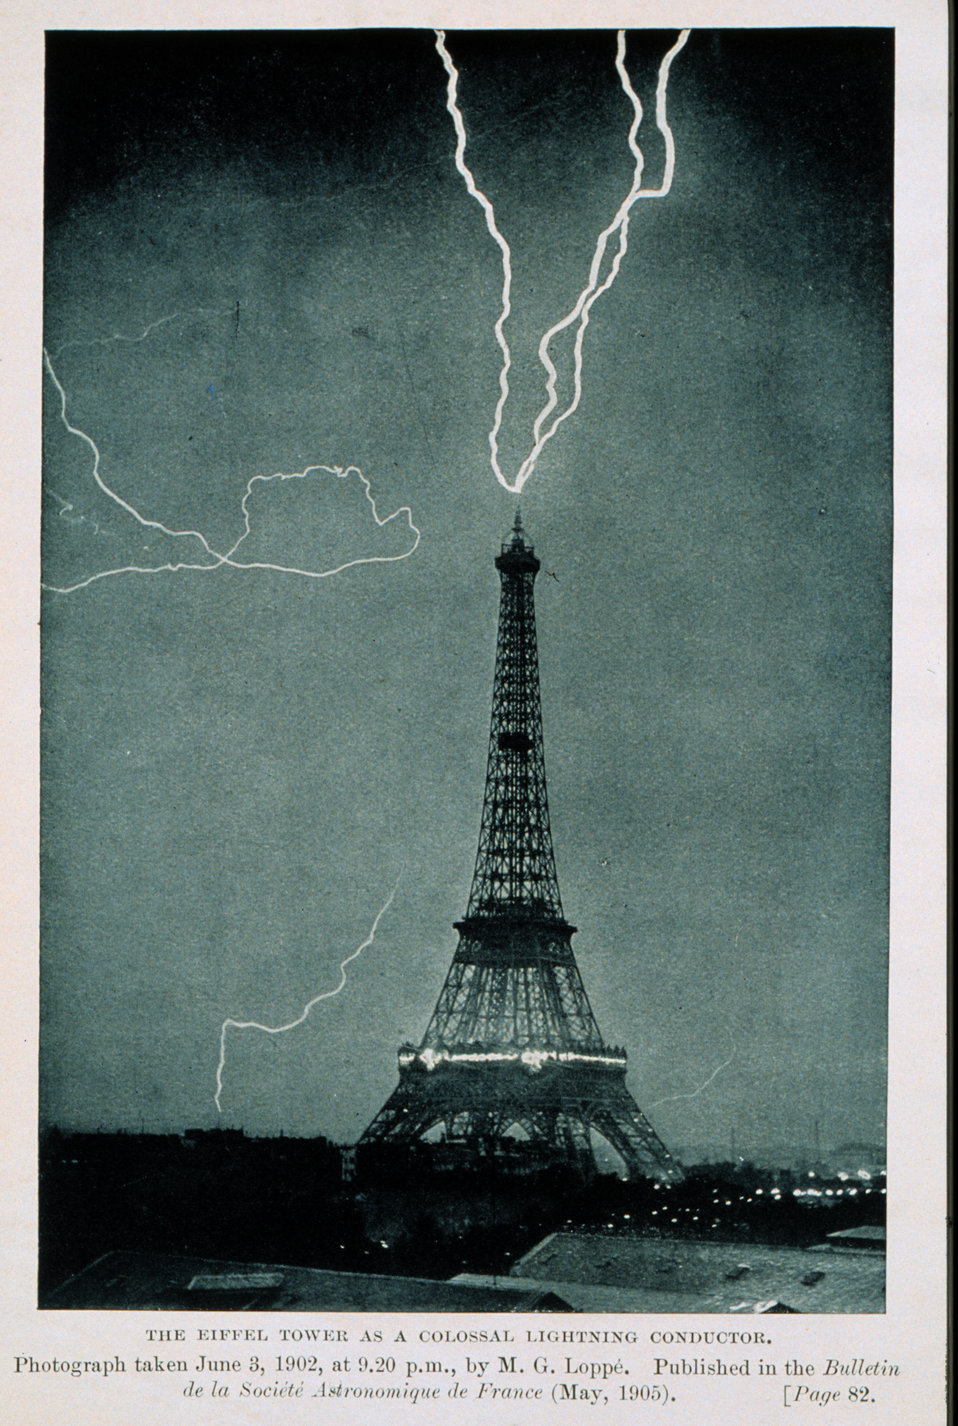 Lightning striking the Eiffel Tower, June 3, 1902, at 9:20 P.M. This is one of the earliest photographs of lightning in an urban setting In:'Thunder and Lightning', Camille Flammarion, translated by Walter Mostyn Published in 1906